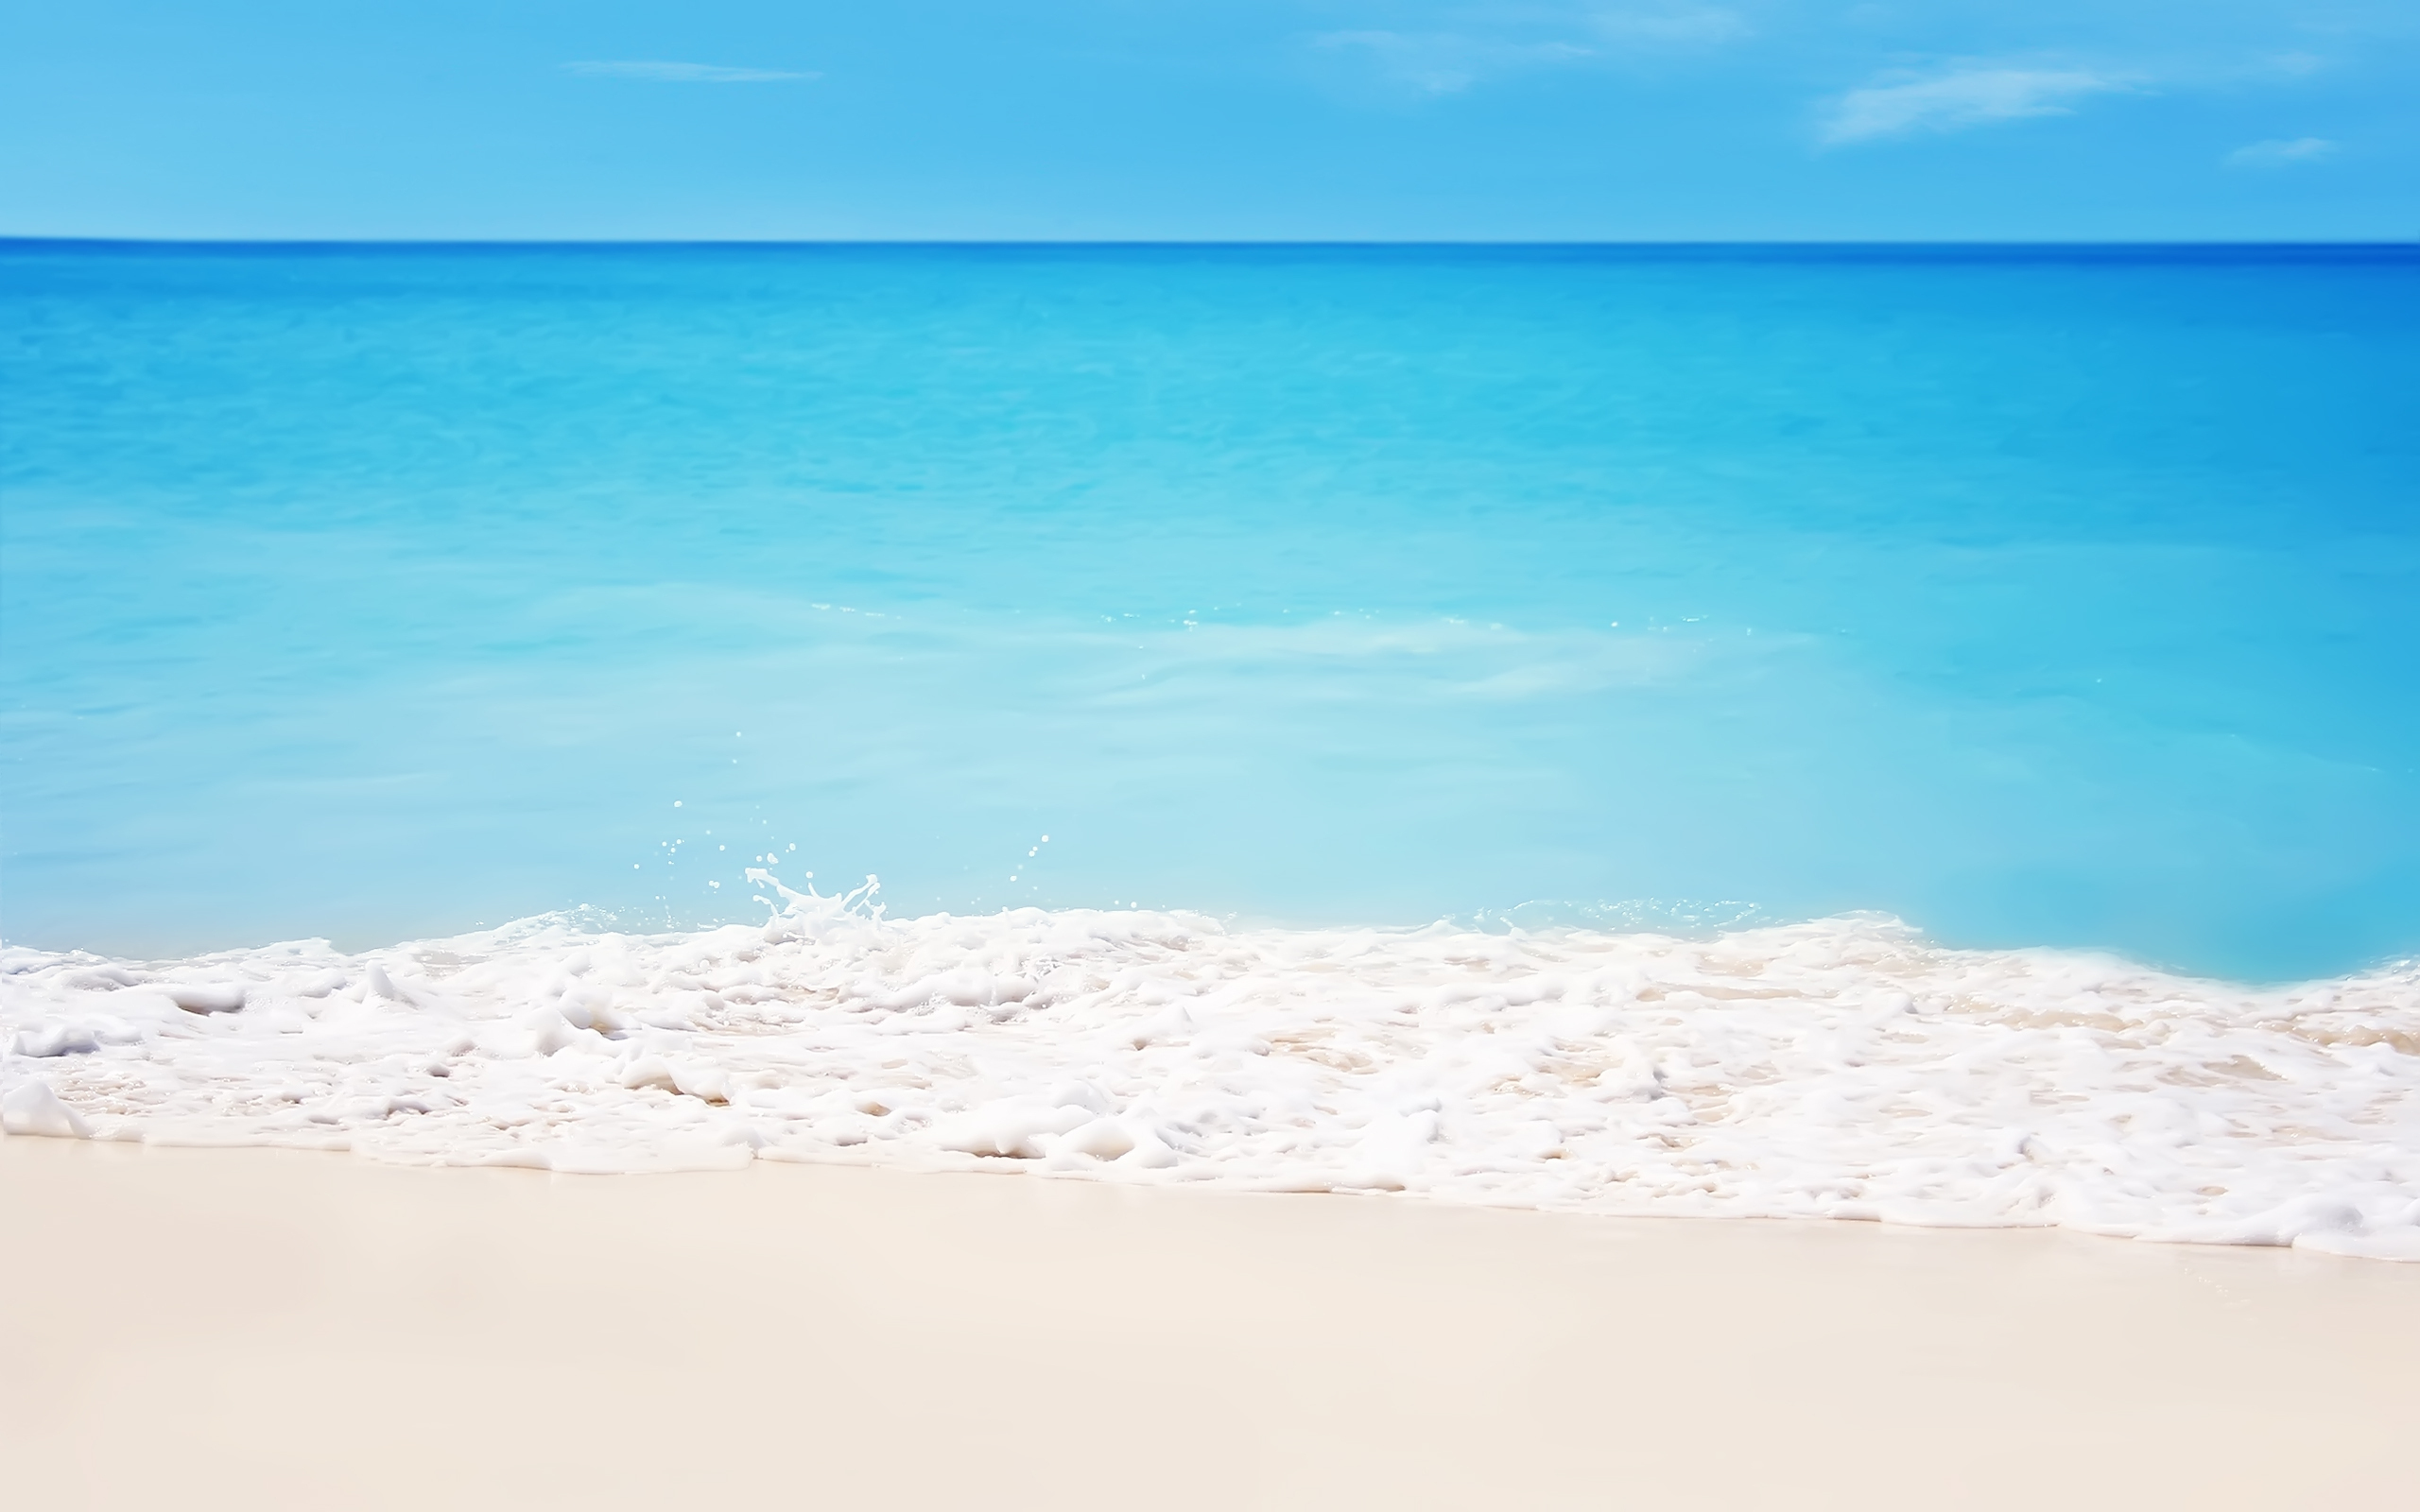 Beach Shore Wallpaper